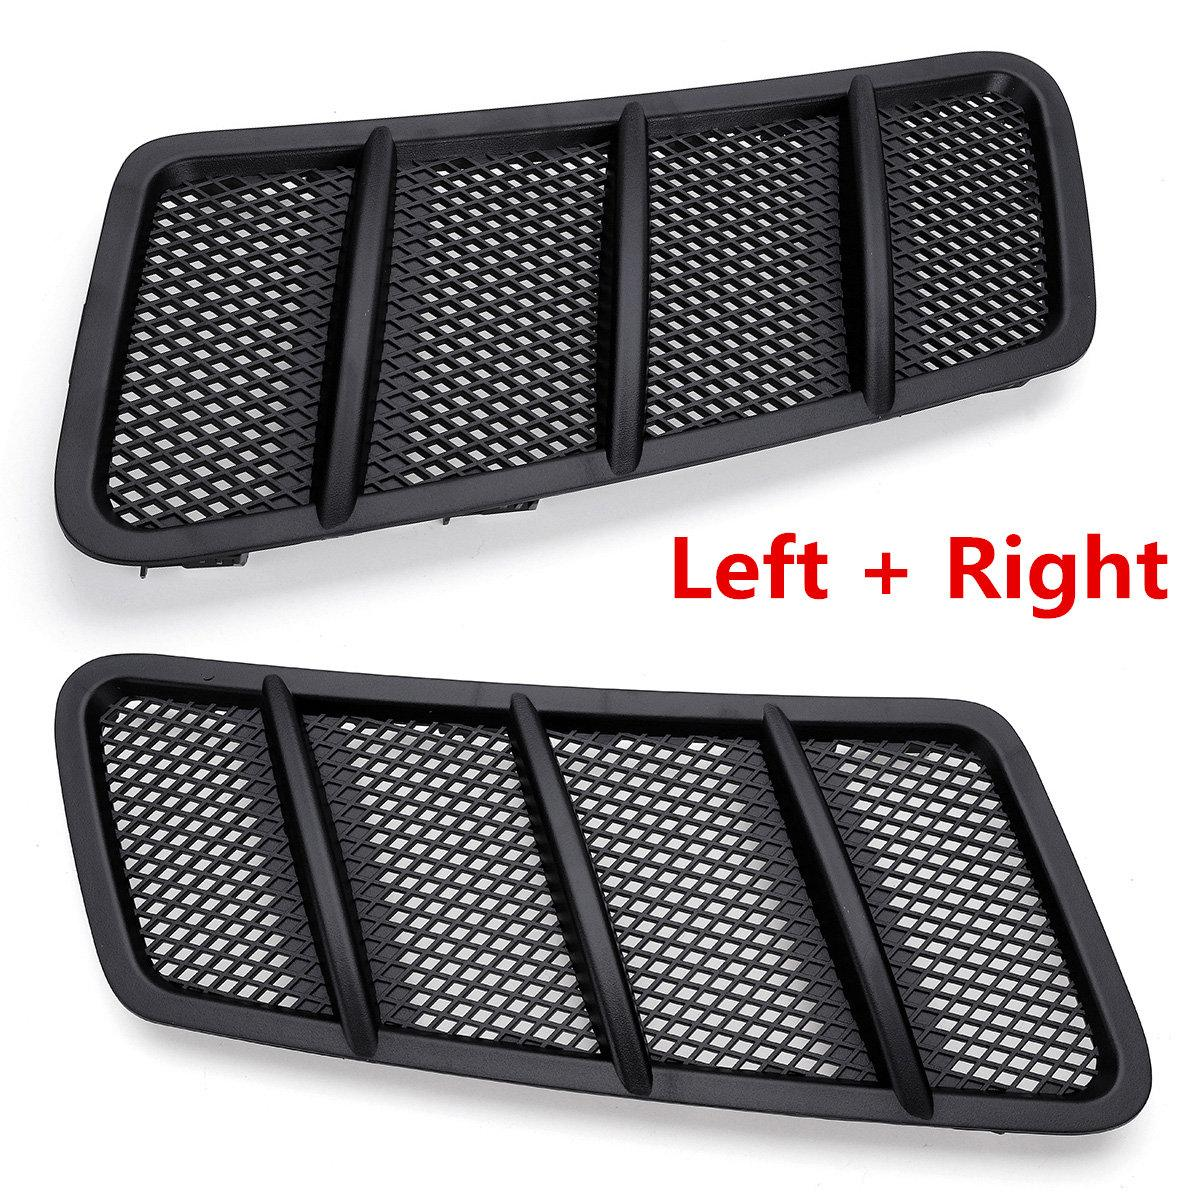 New Car Front Hood Vent Grille Engine Cover Hood For Mercedes For Benz W166 GL GL350 GL450 GL550 ML ML350 ML550 2012-2015 grille